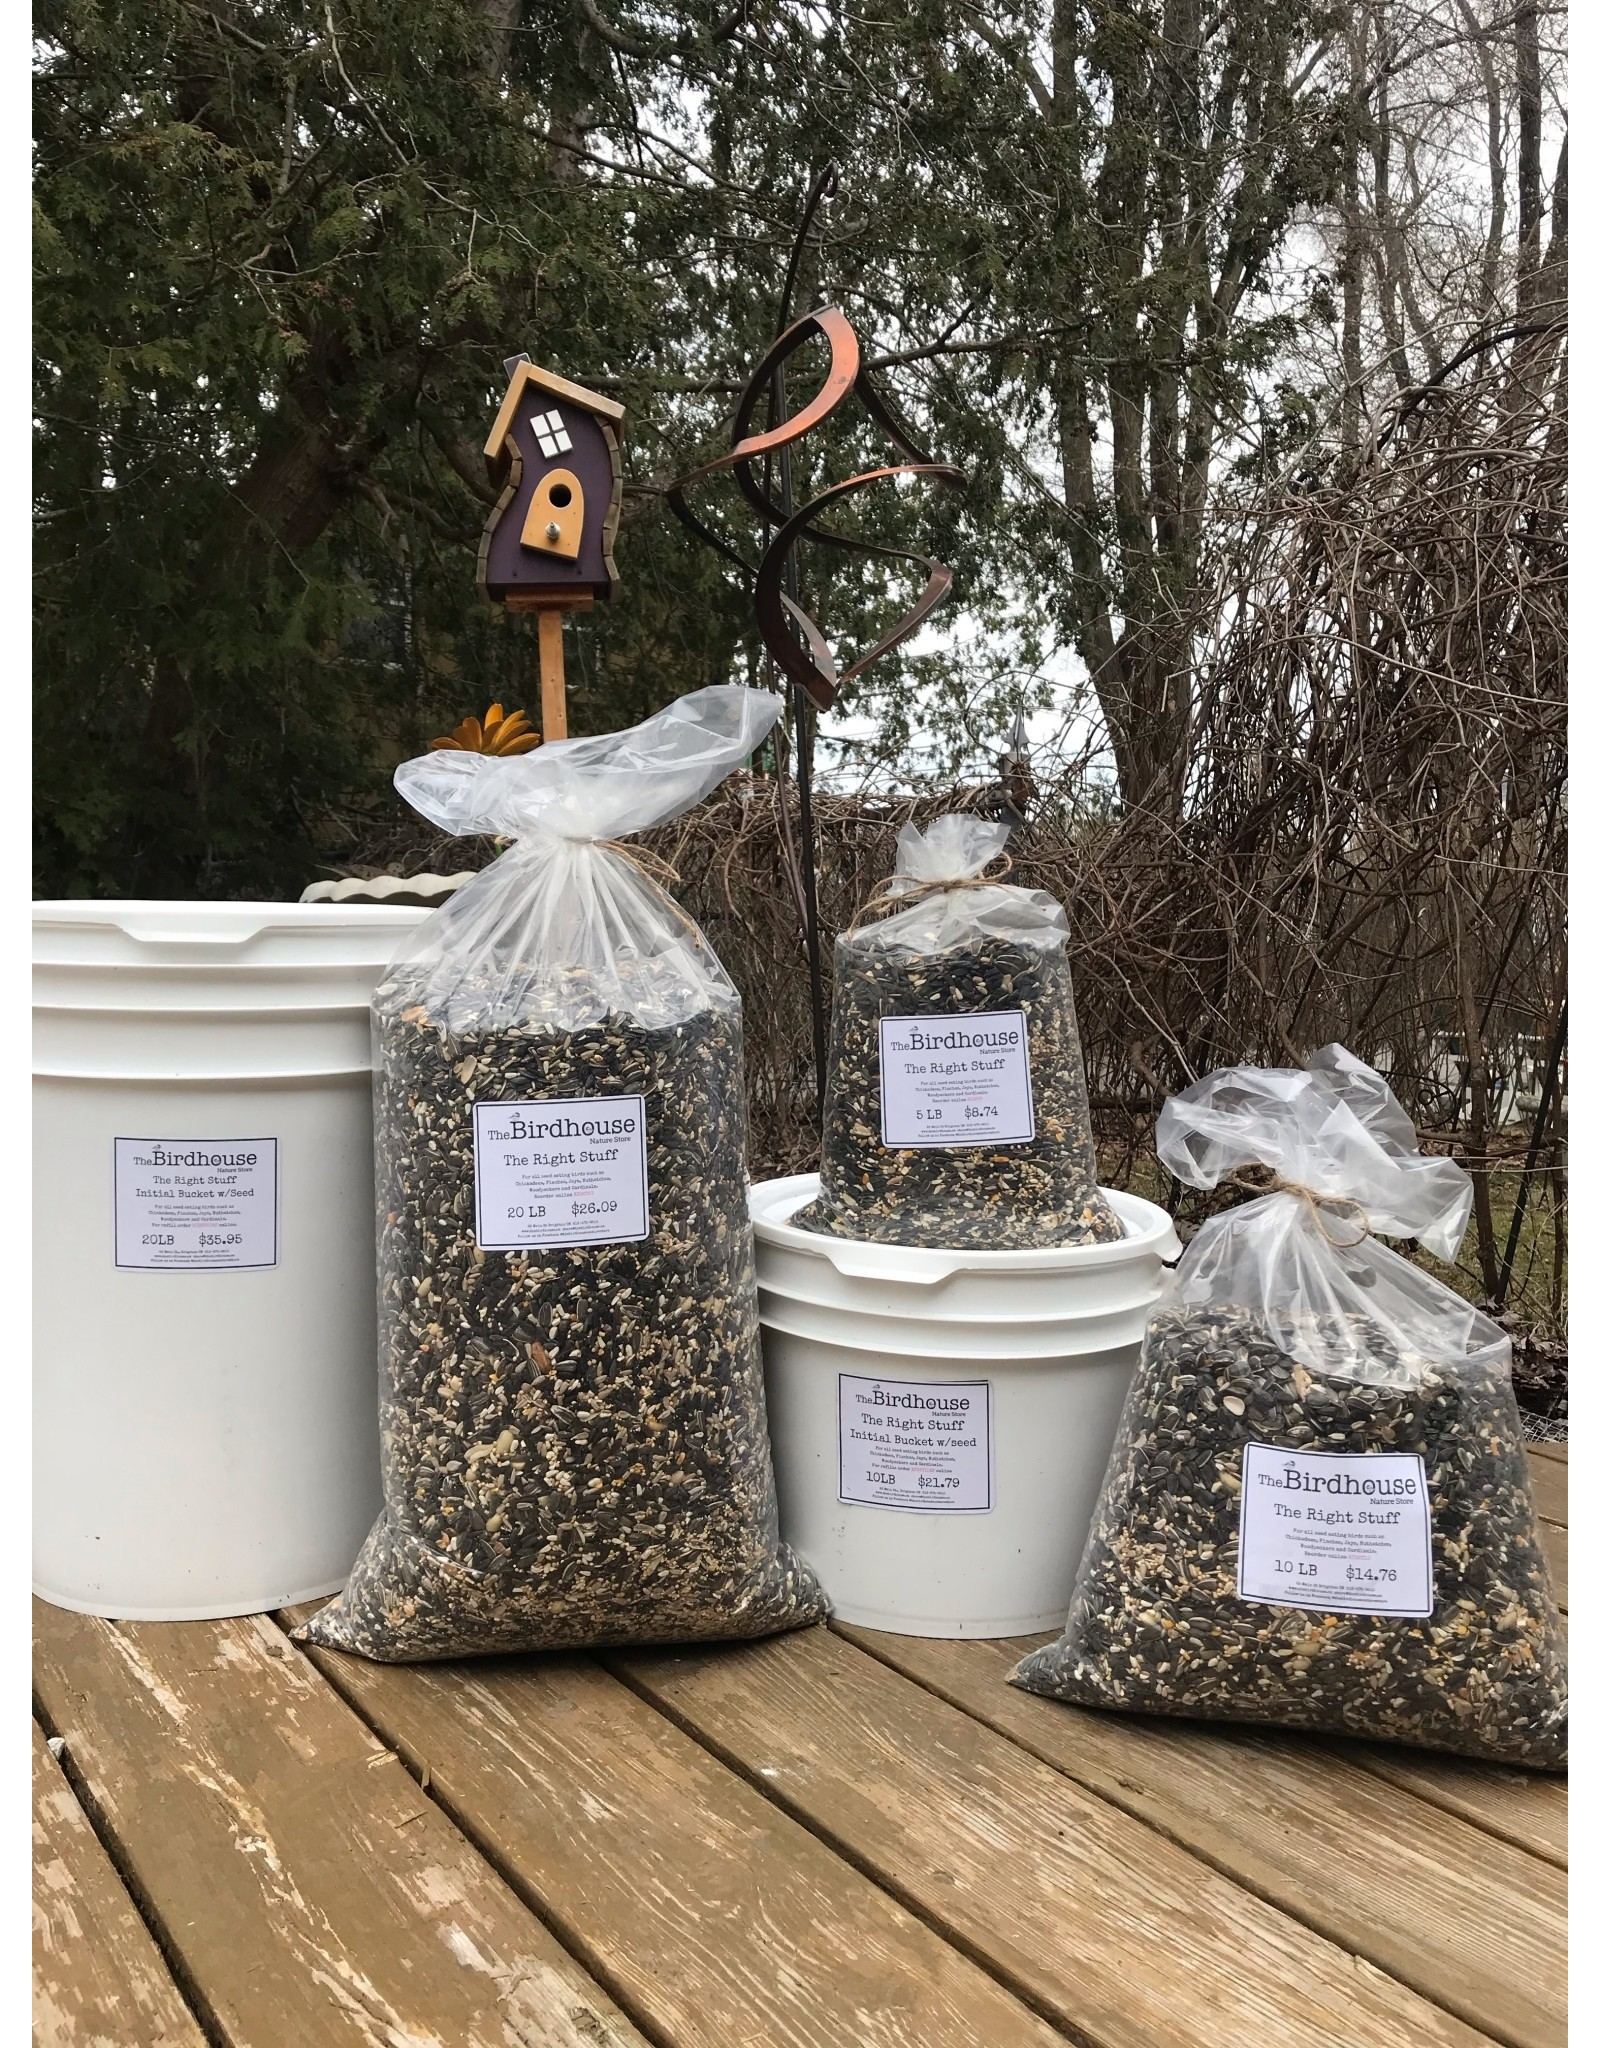 The Birdhouse RIGHT20   20lbs Right Stuff in a bag